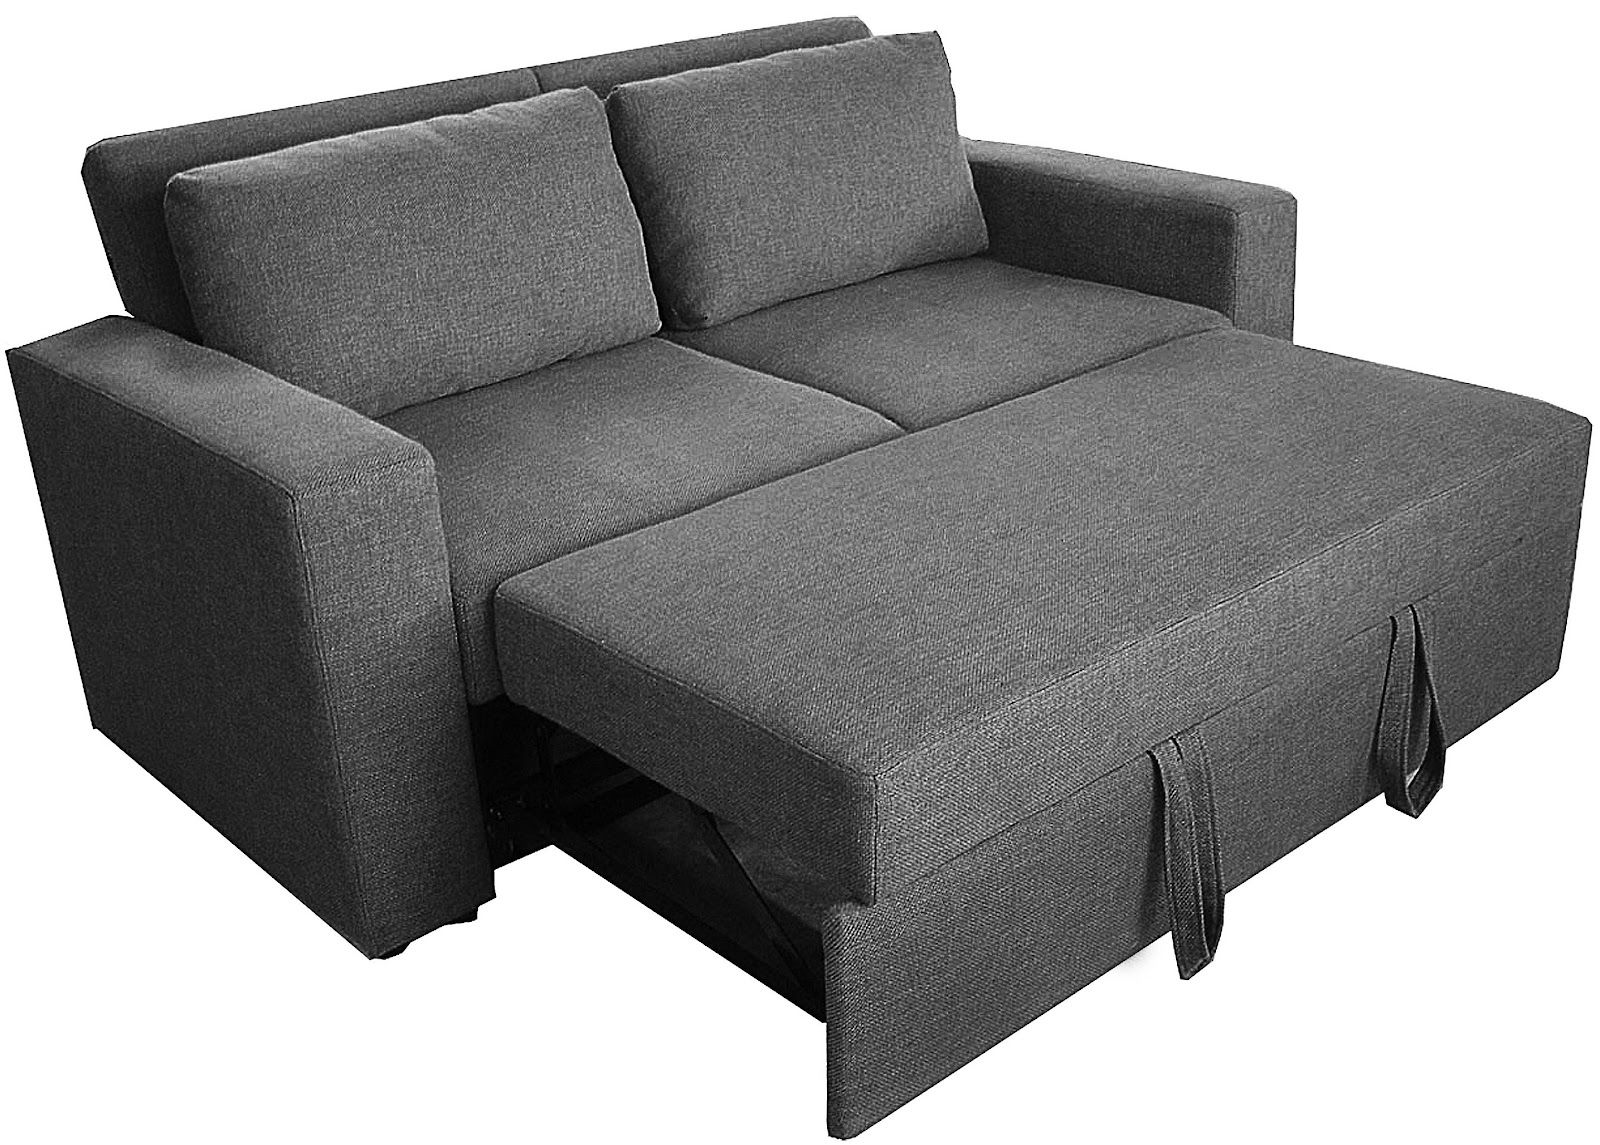 Awesome Great Sofa Bed Pull Out 56 For Your Small Home Decoration Ideas  With Sofa Bed